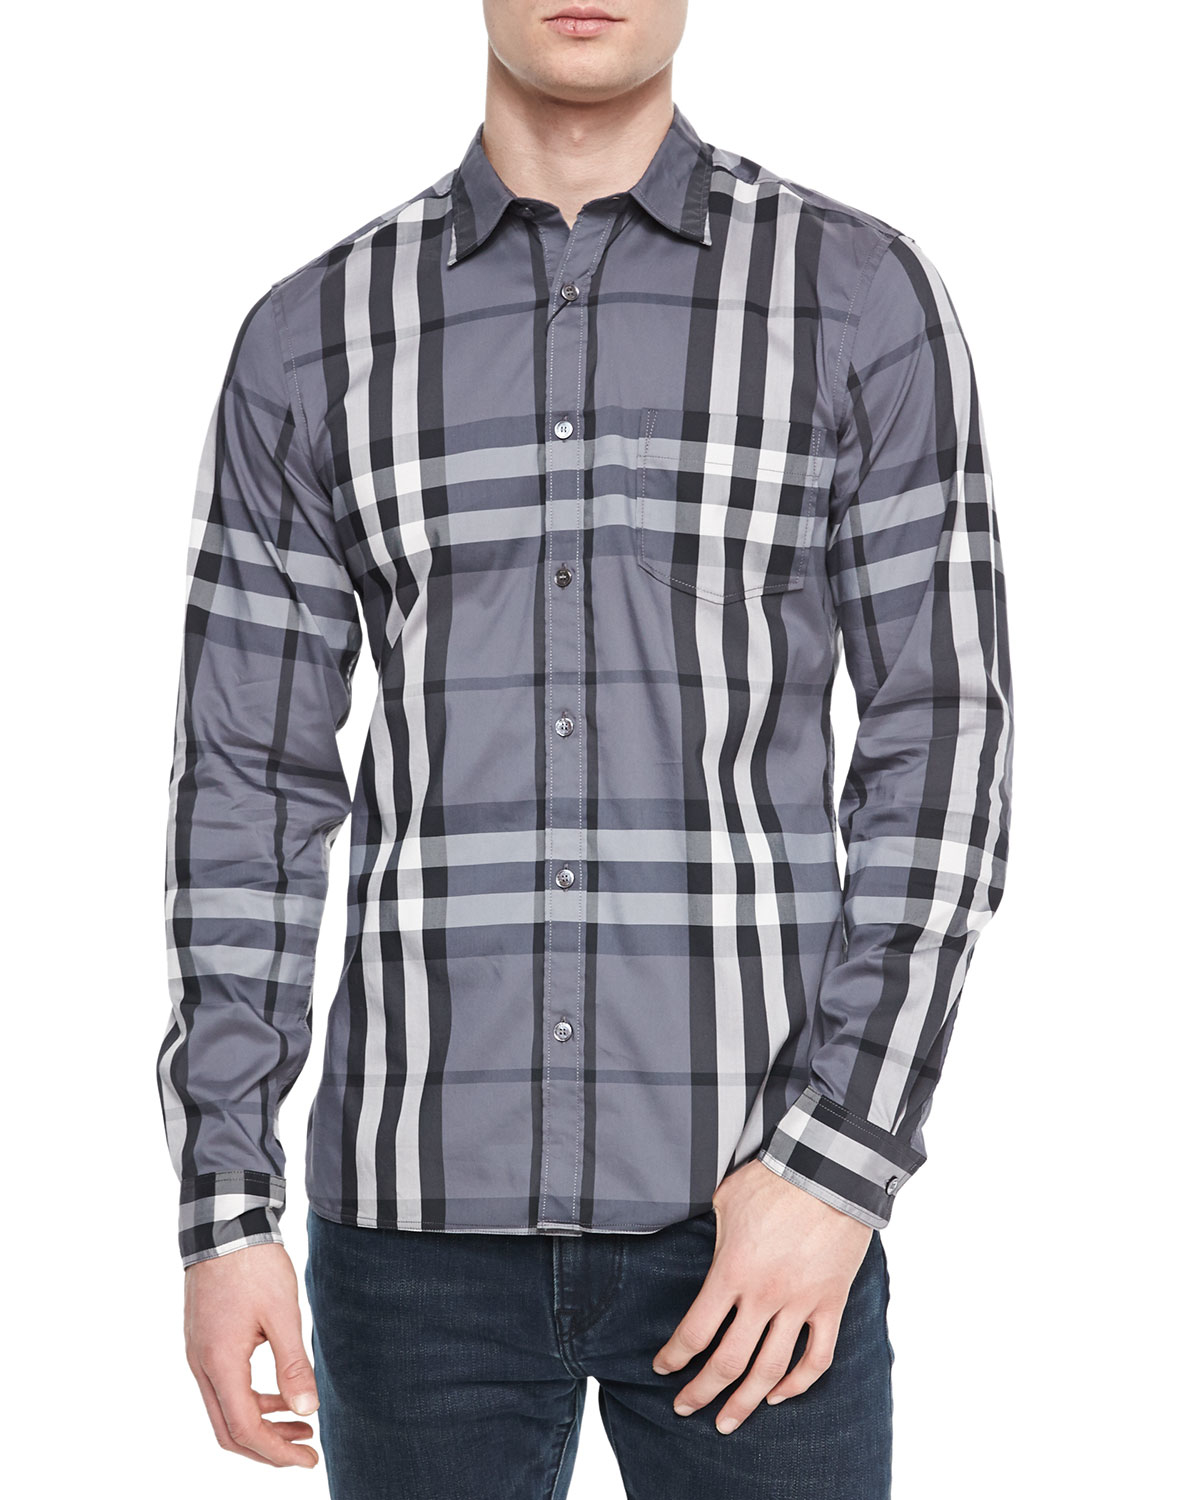 Burberry brit woven check sport shirt for men lyst for Burberry brit checked shirt